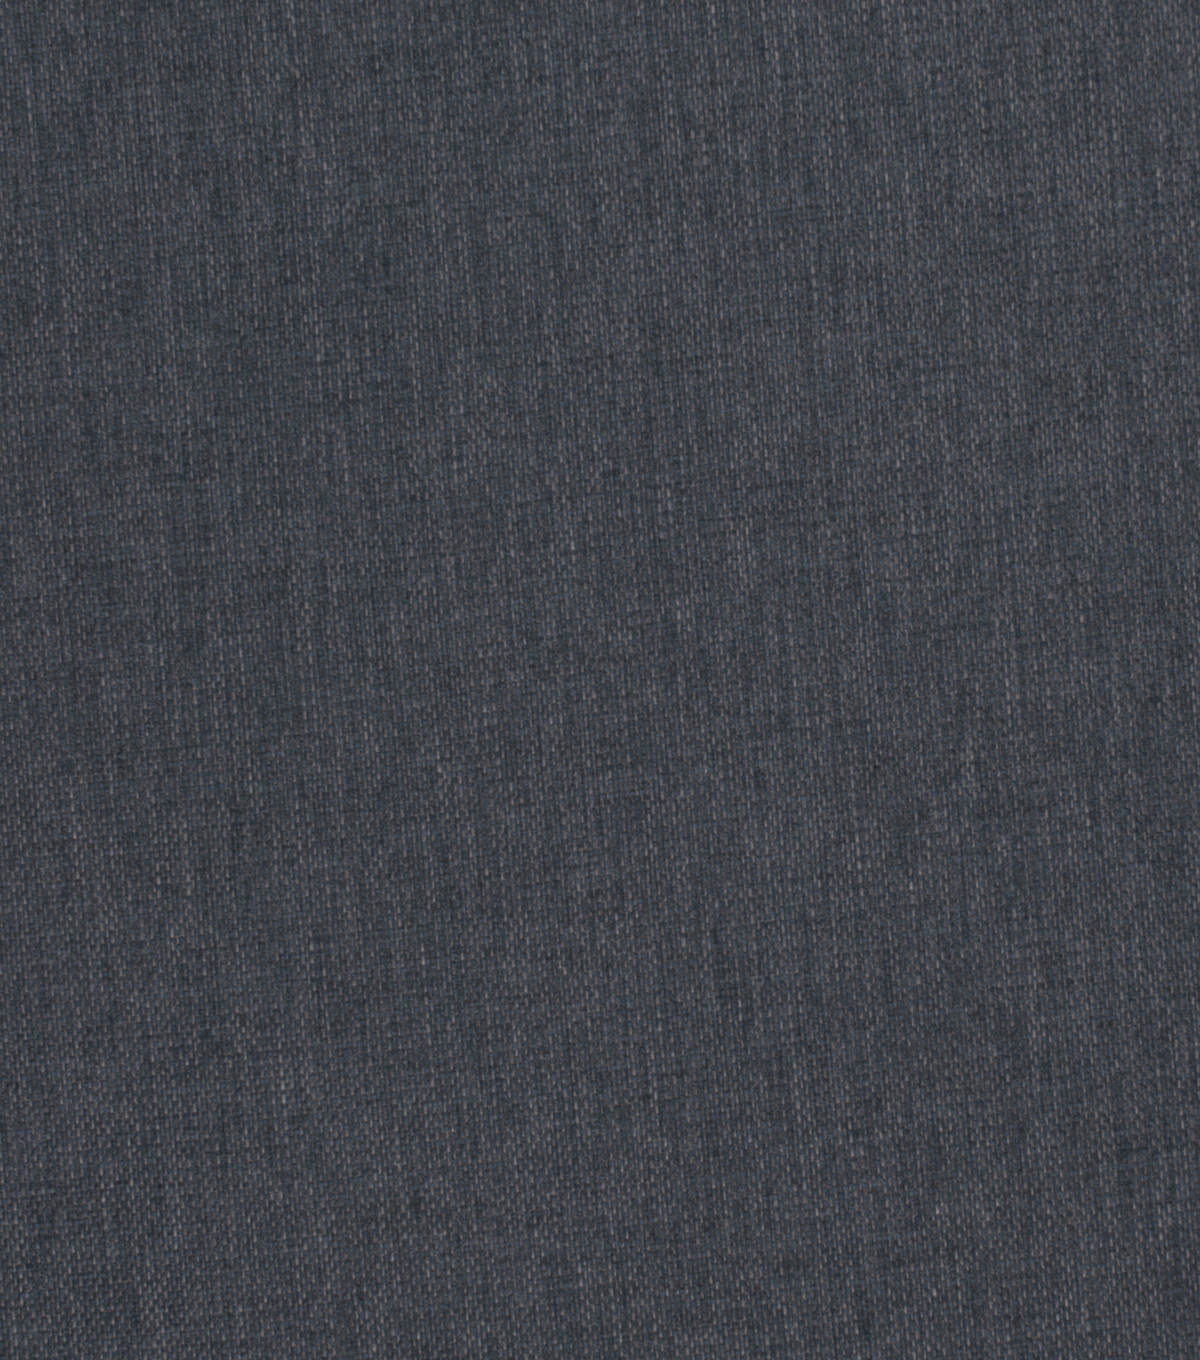 Home Decor 8x8 Fabric Swatch-Eaton Square Artful Navy